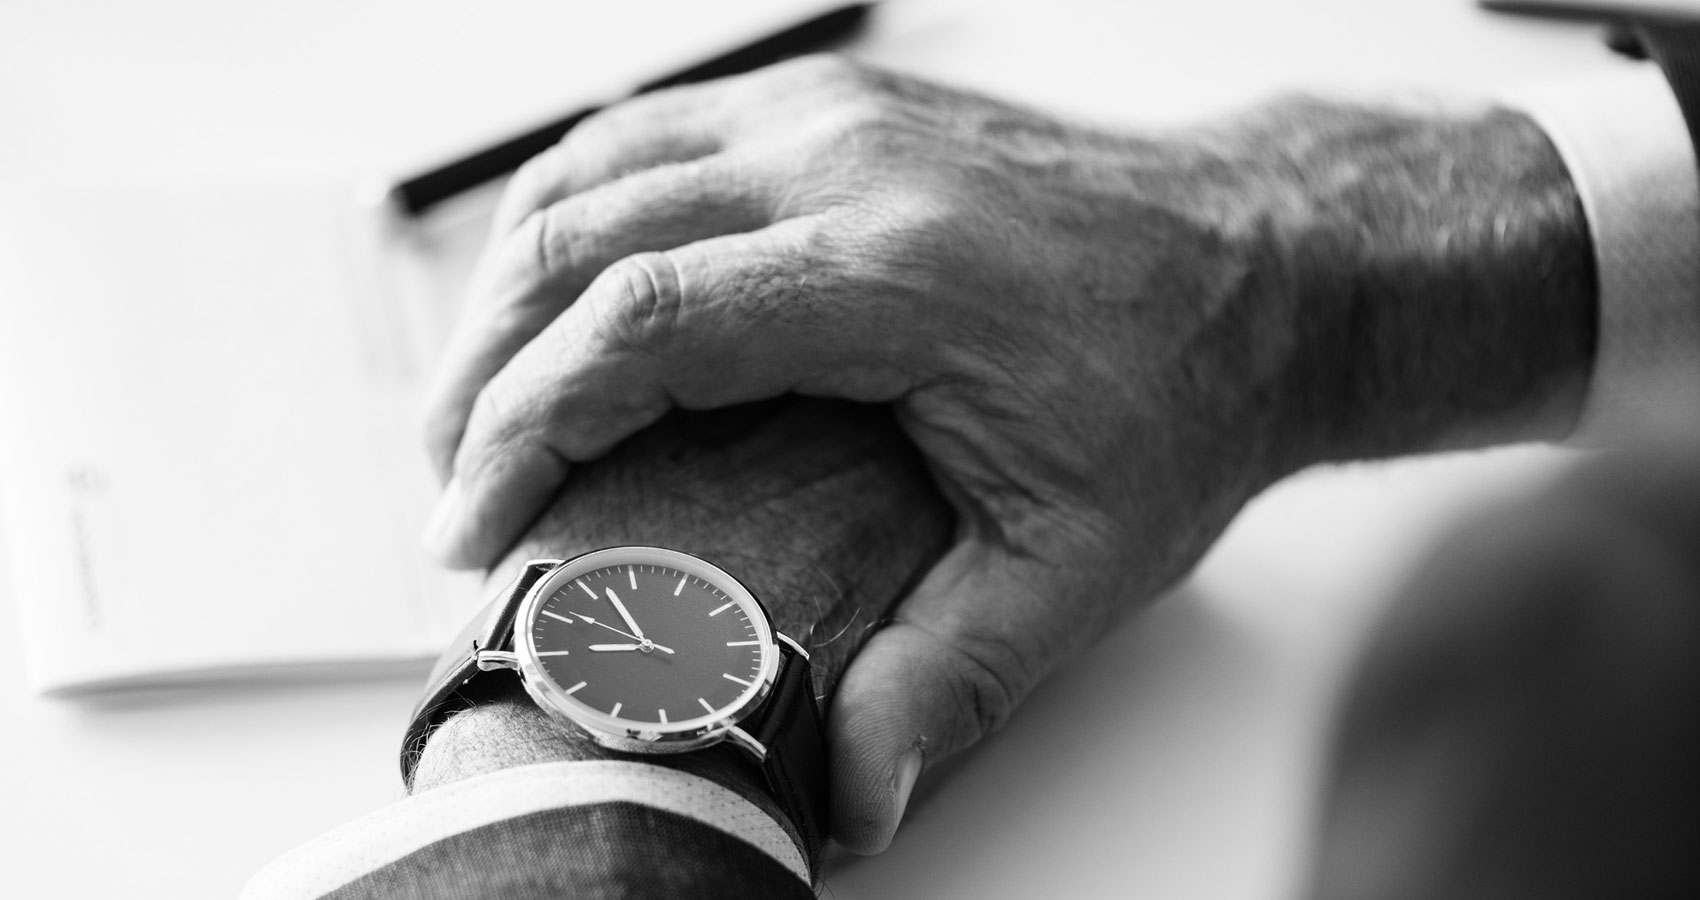 Time Is All You Can Give by JOHN BAVERSTOCK at Spillwords.com